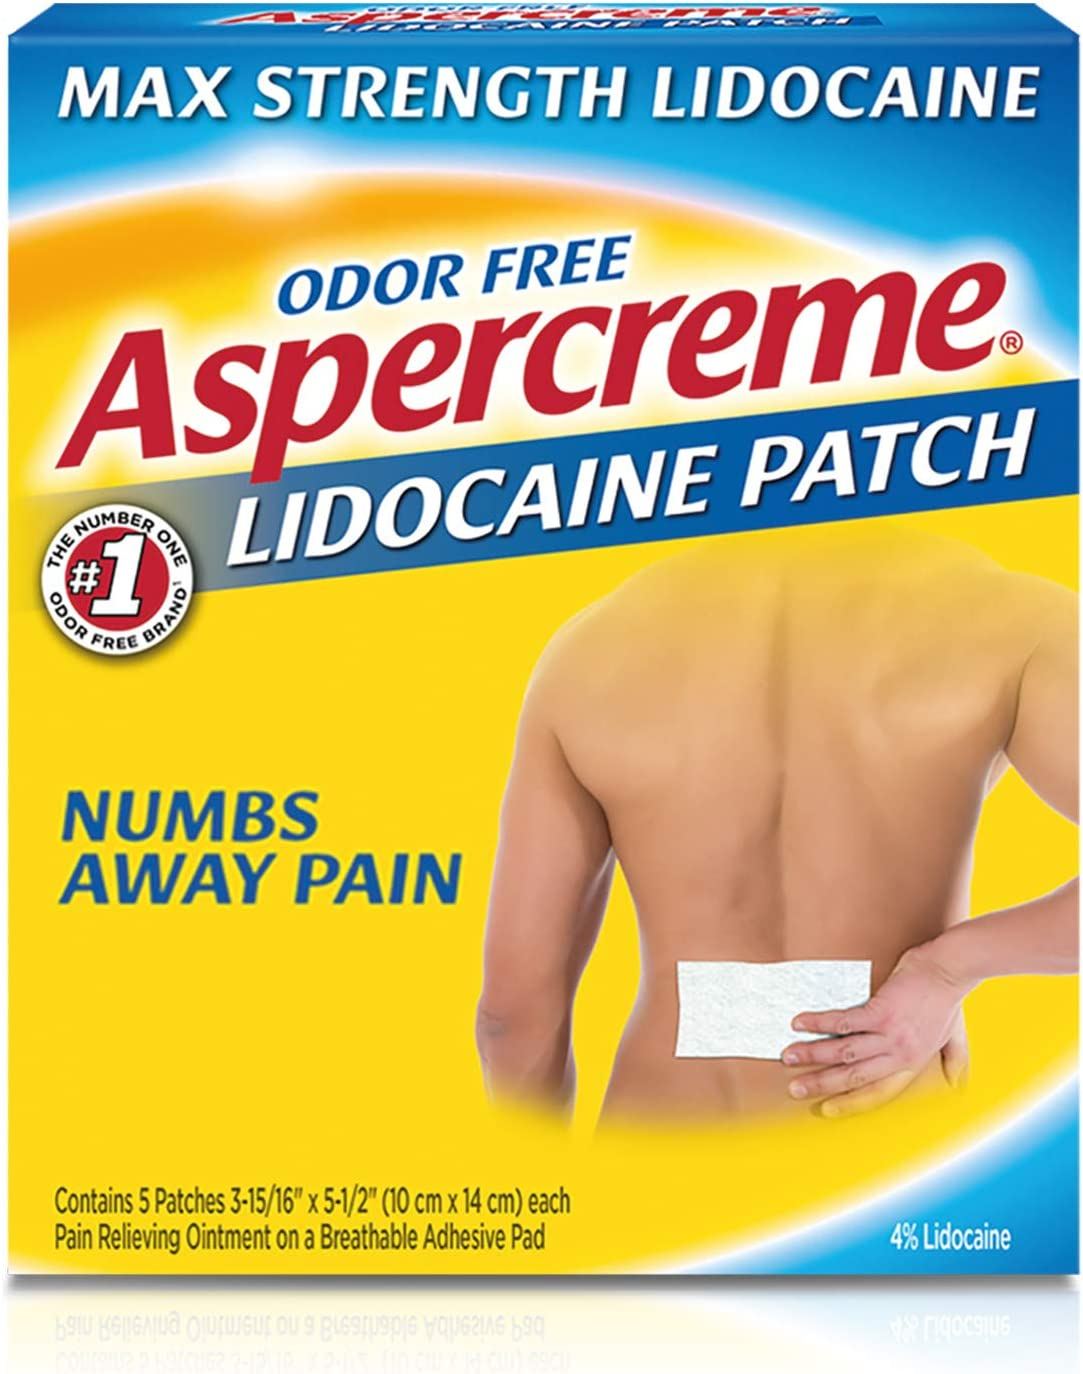 Amazon.com: Aspercreme Odor Free Max Strength Lidocaine Pain Relief Patch  for Back Pain, 5 Count, Aspercreme Max Strength Pain Relieving Lidocaine  Patch , 3.94 X 5.5 -Inch (5 Count): Health & Personal Care